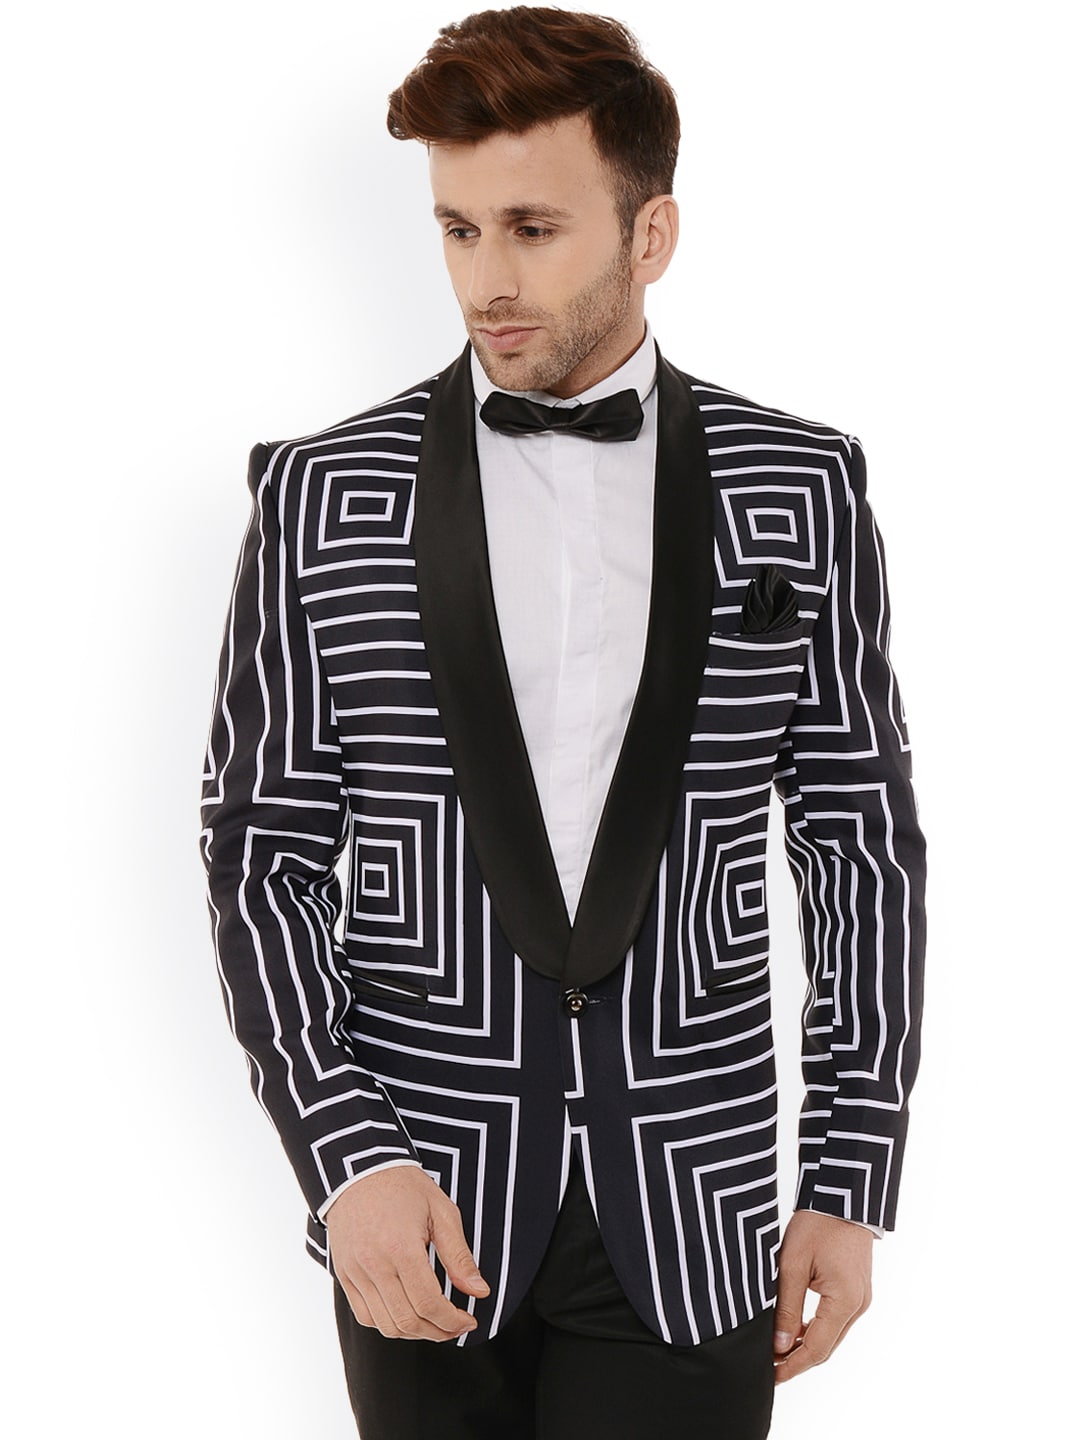 90b37d1d31106 Blazers - Buy Blazer Online at Best Price in India